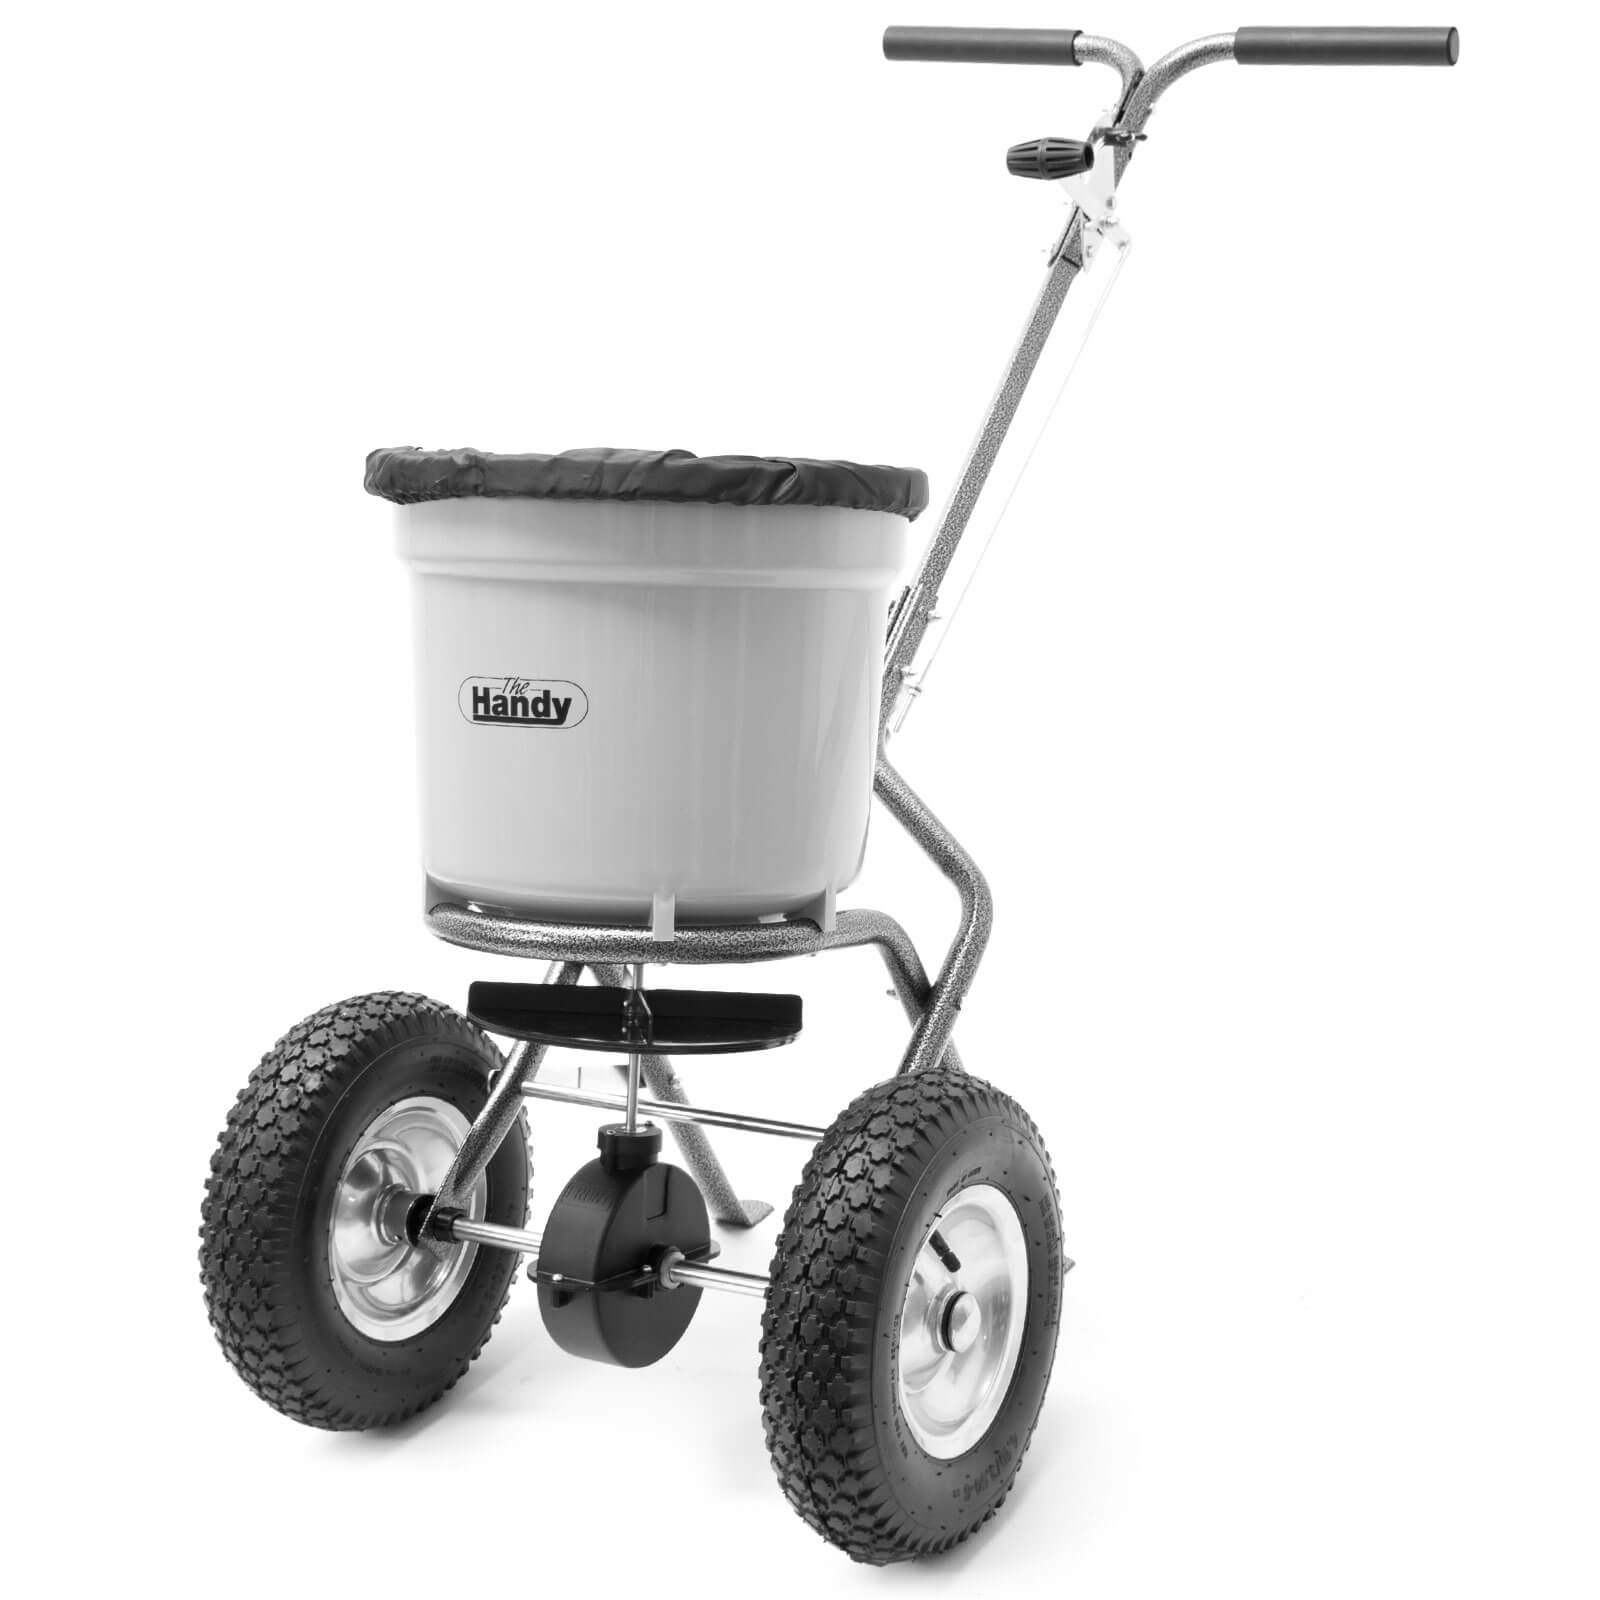 Image of Handy THS50 Push Feed, Grass and Salt Broadcast Spreader 23kg